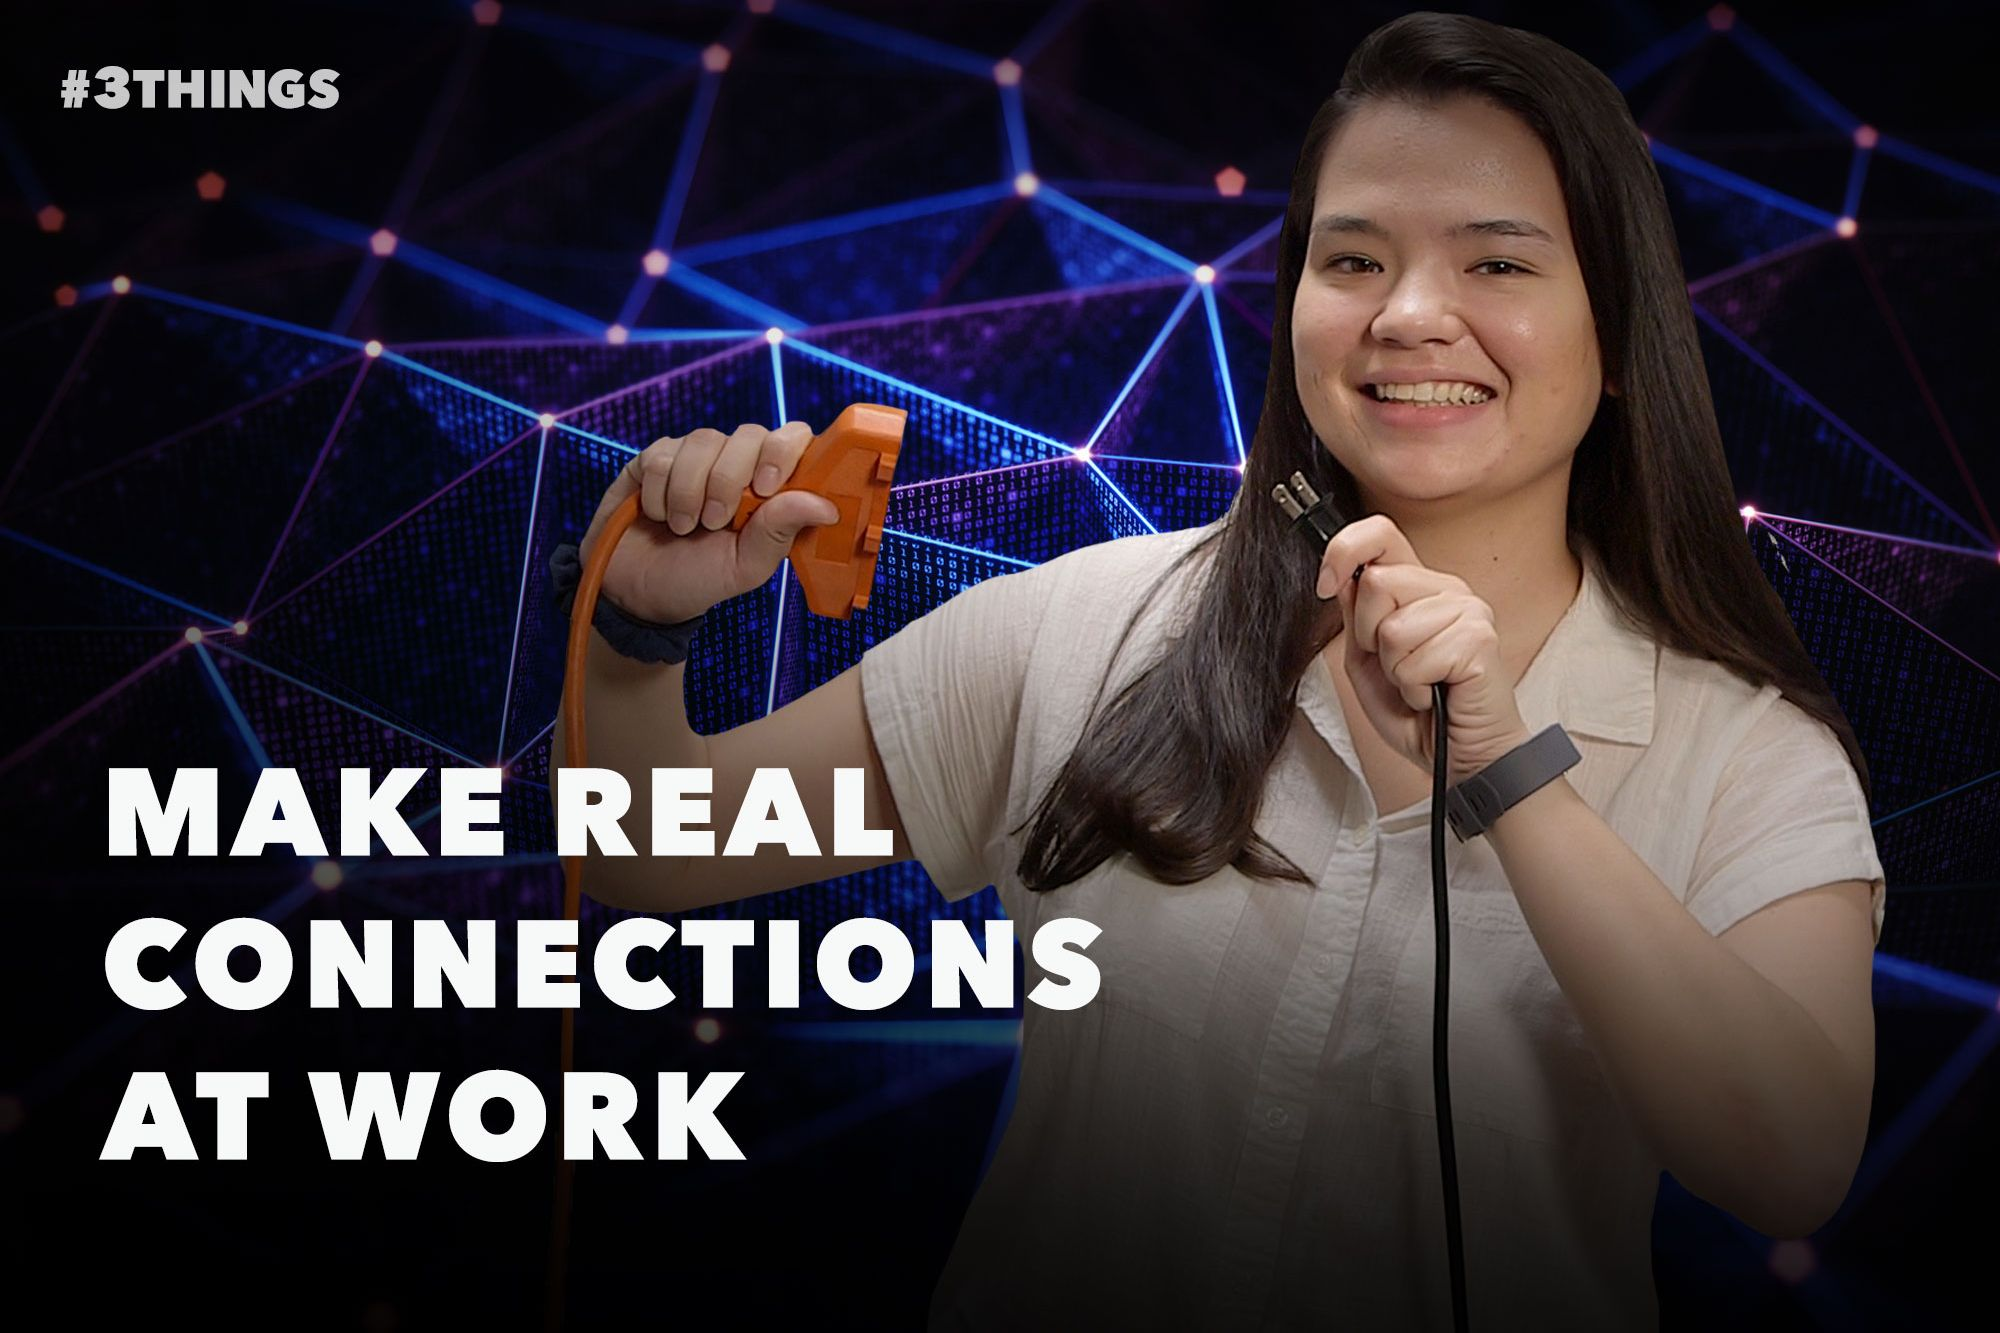 How to Make Meaningful Connections at Work